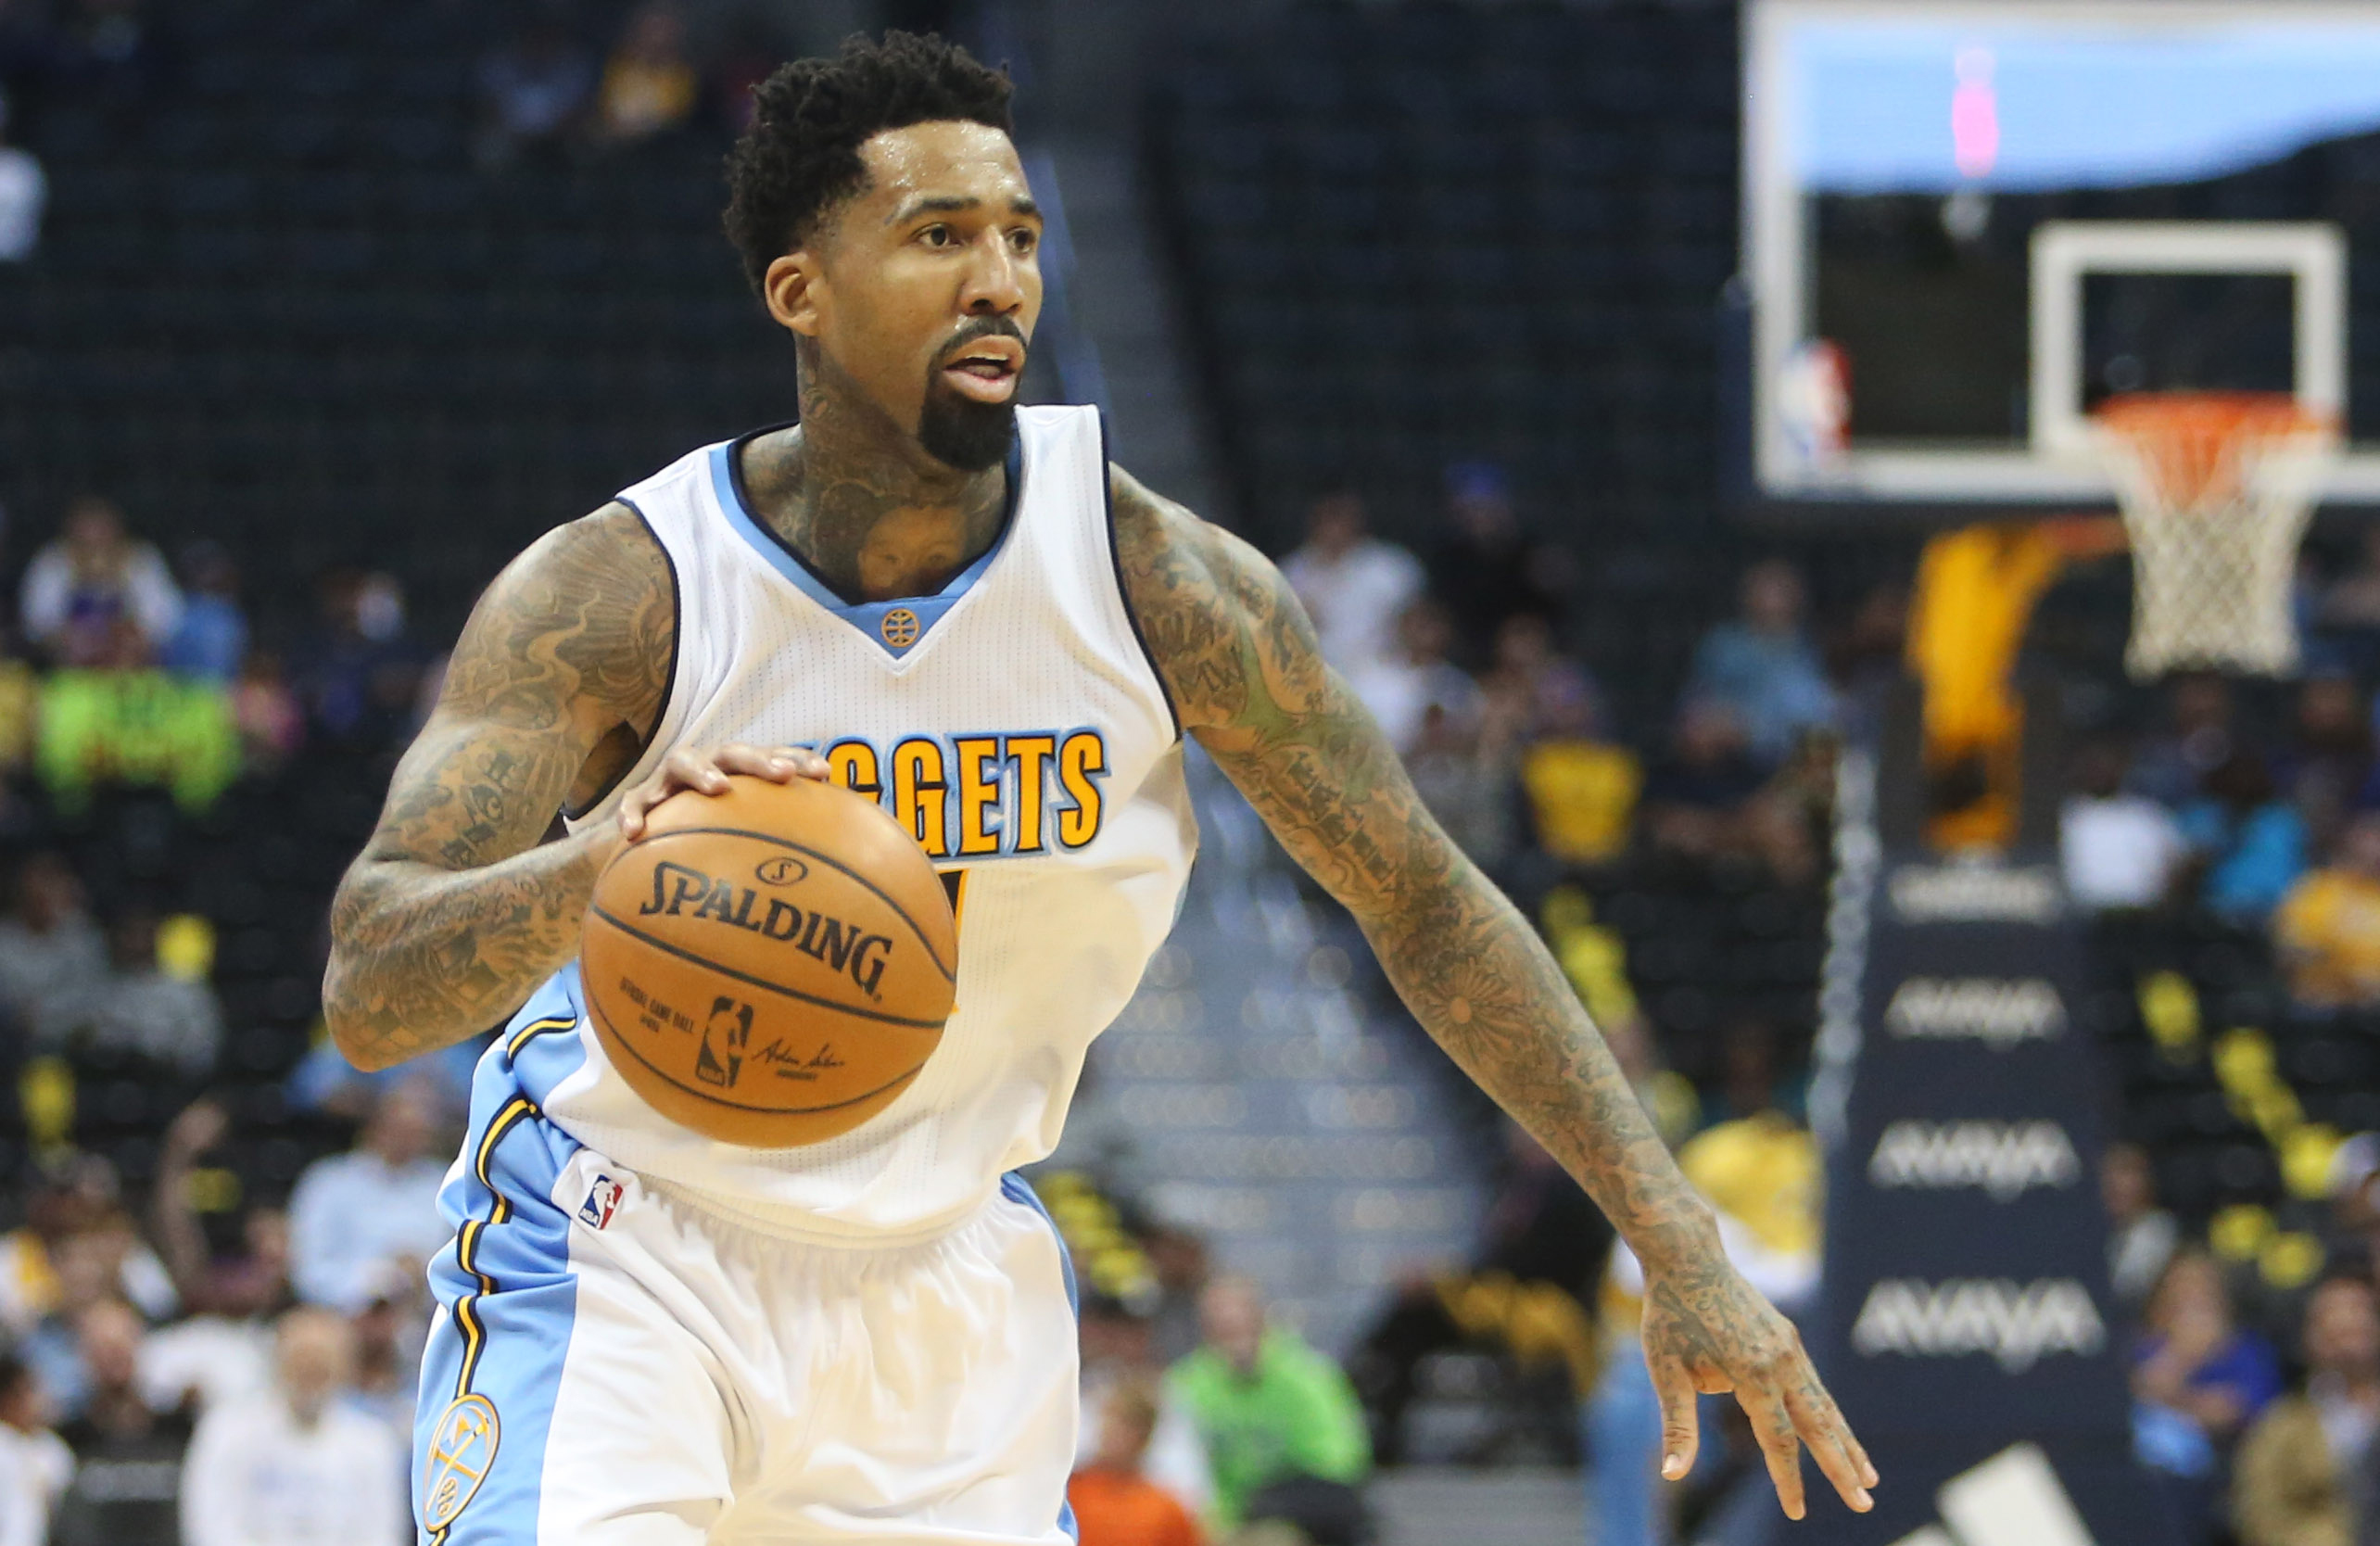 Houston rockets nba rumors - According To Multiple Reports The Houston Rockets Can Be A Potential Destination For An Unhappy Wilson Chandler